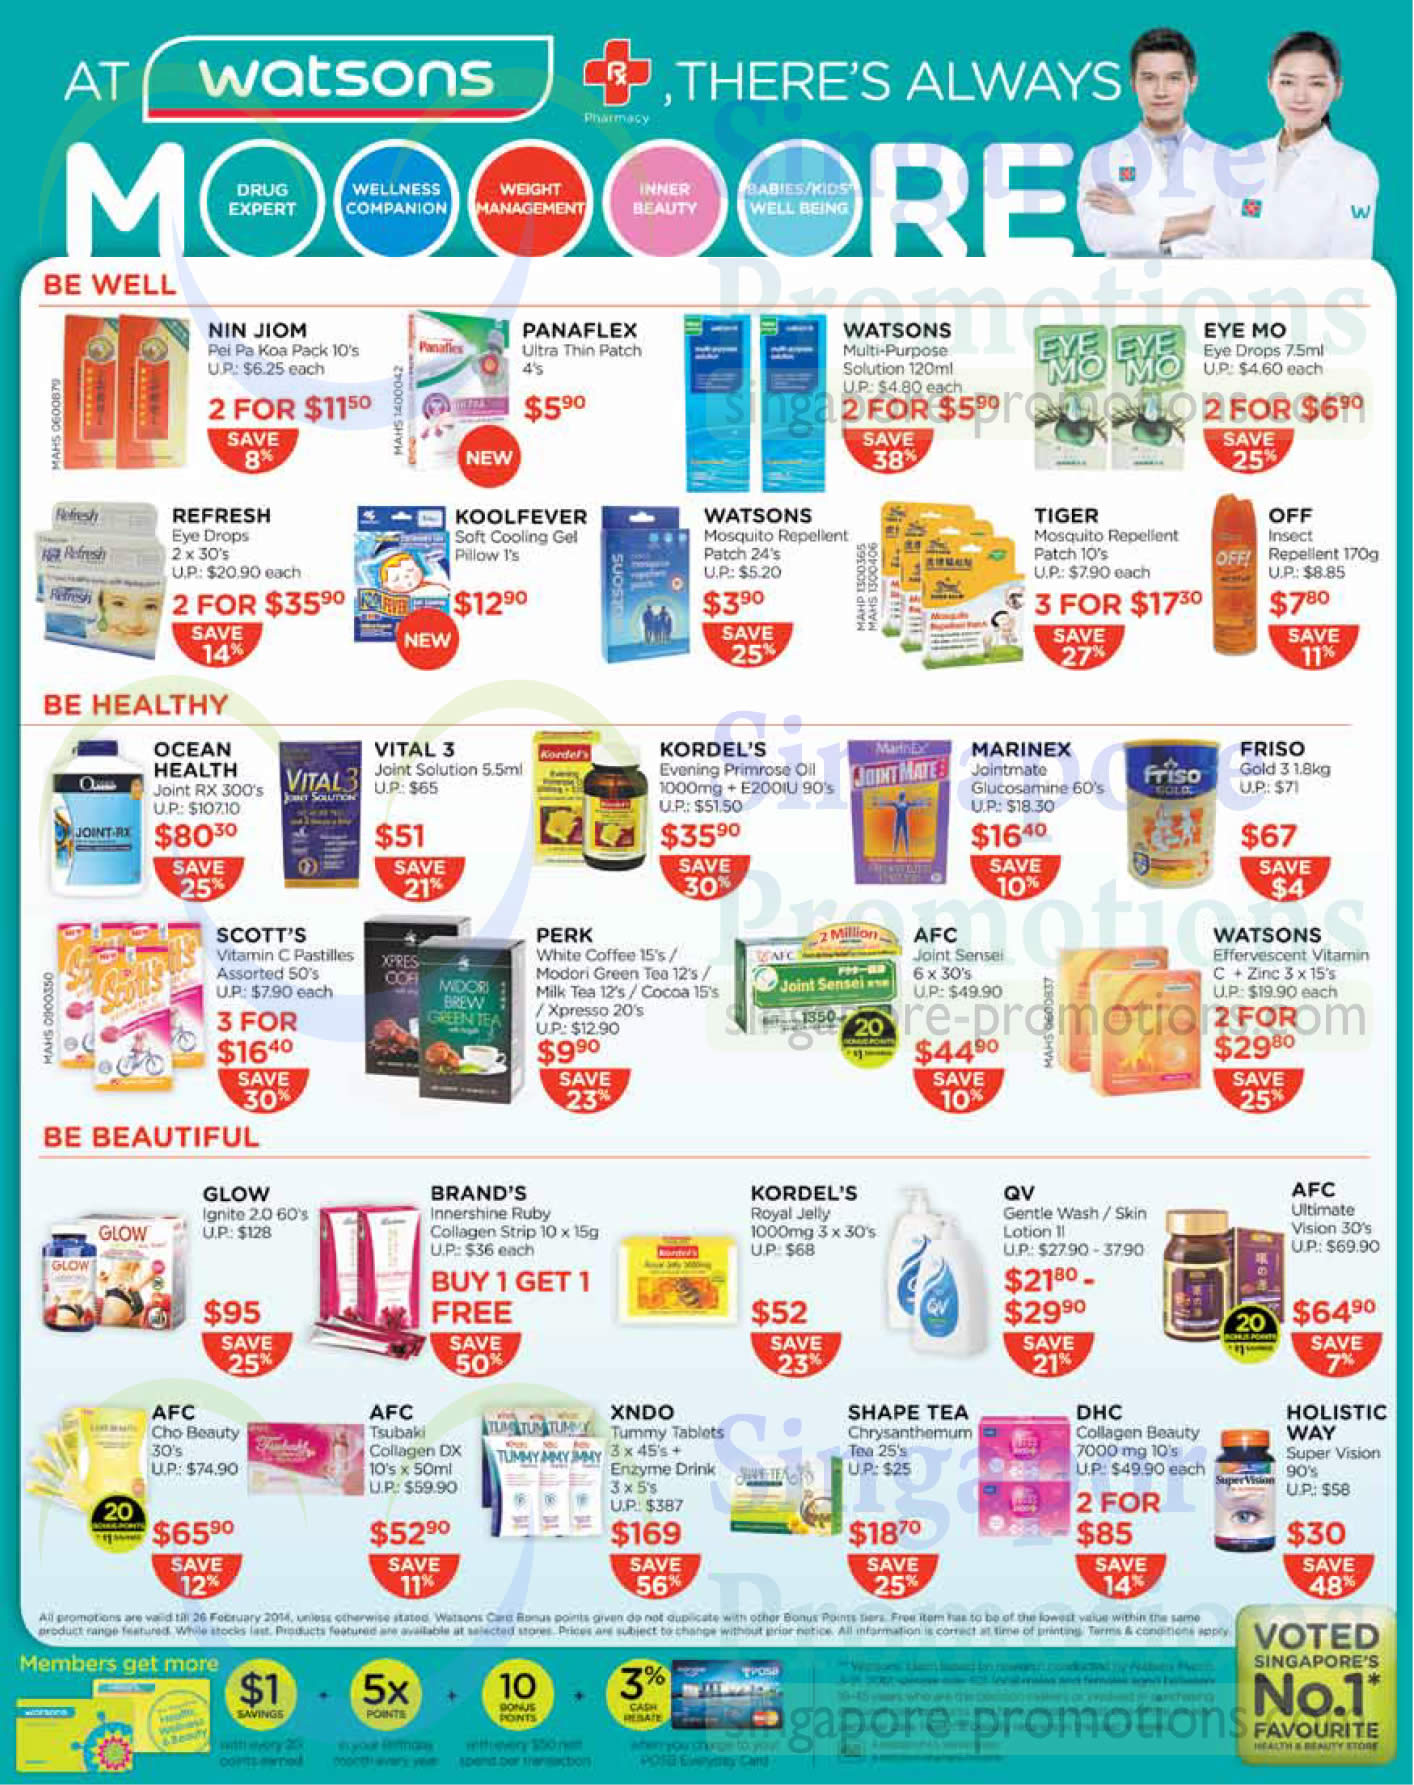 Be Well, Be Healthy, Be Beautiful Refresh, Ocean Health, AFC, Friso, Brands, DHC, Holistic Way, Kordels